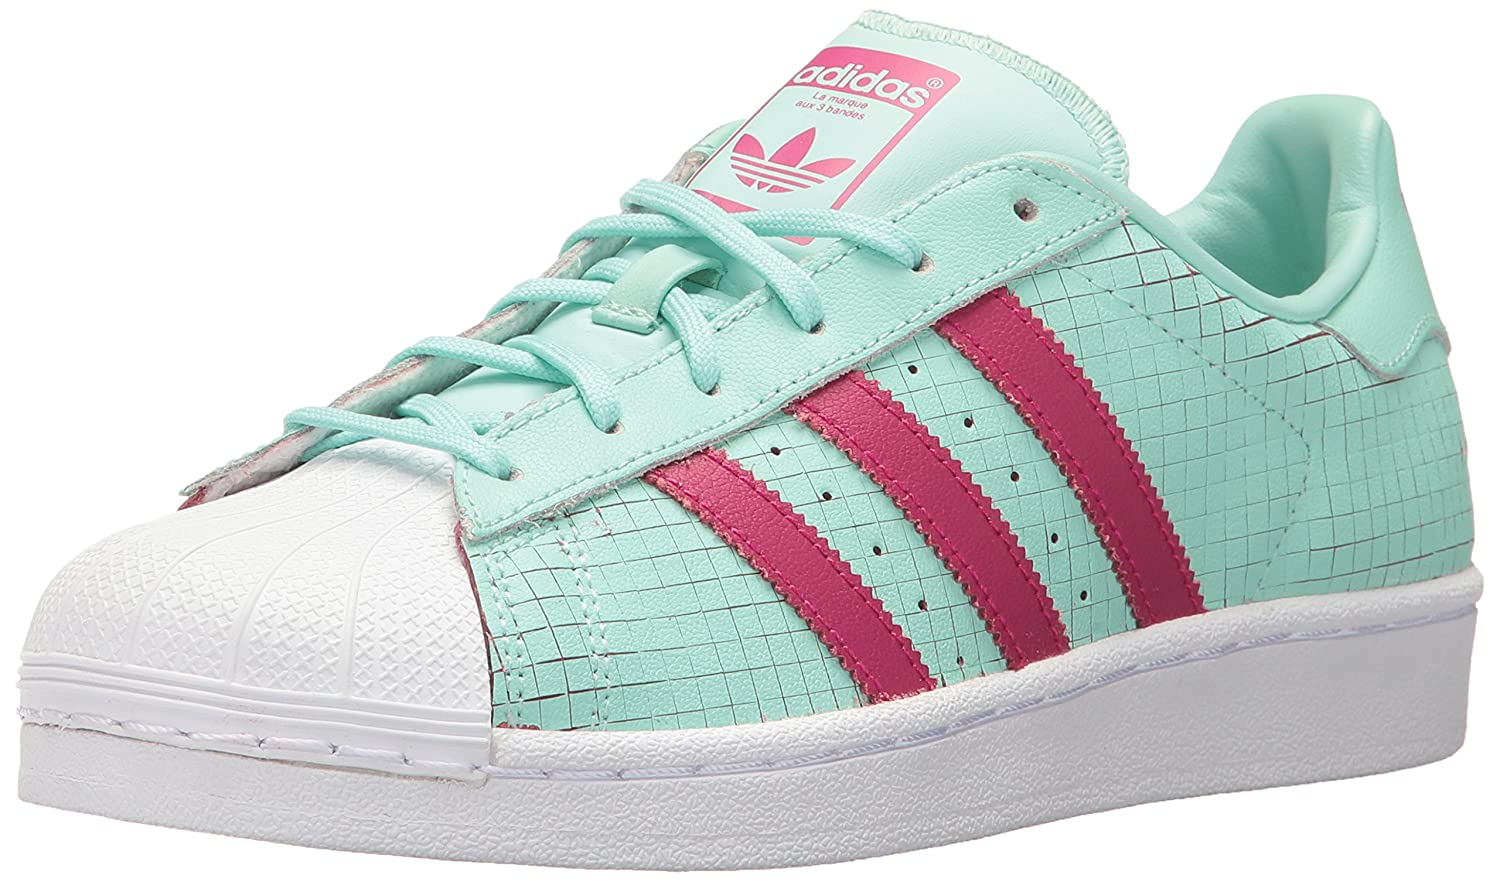 adidas Originals Women's Superstar J Shoes B01N3QE047 7 M US Big Kid|Icegrn/Icegrn/Bopink